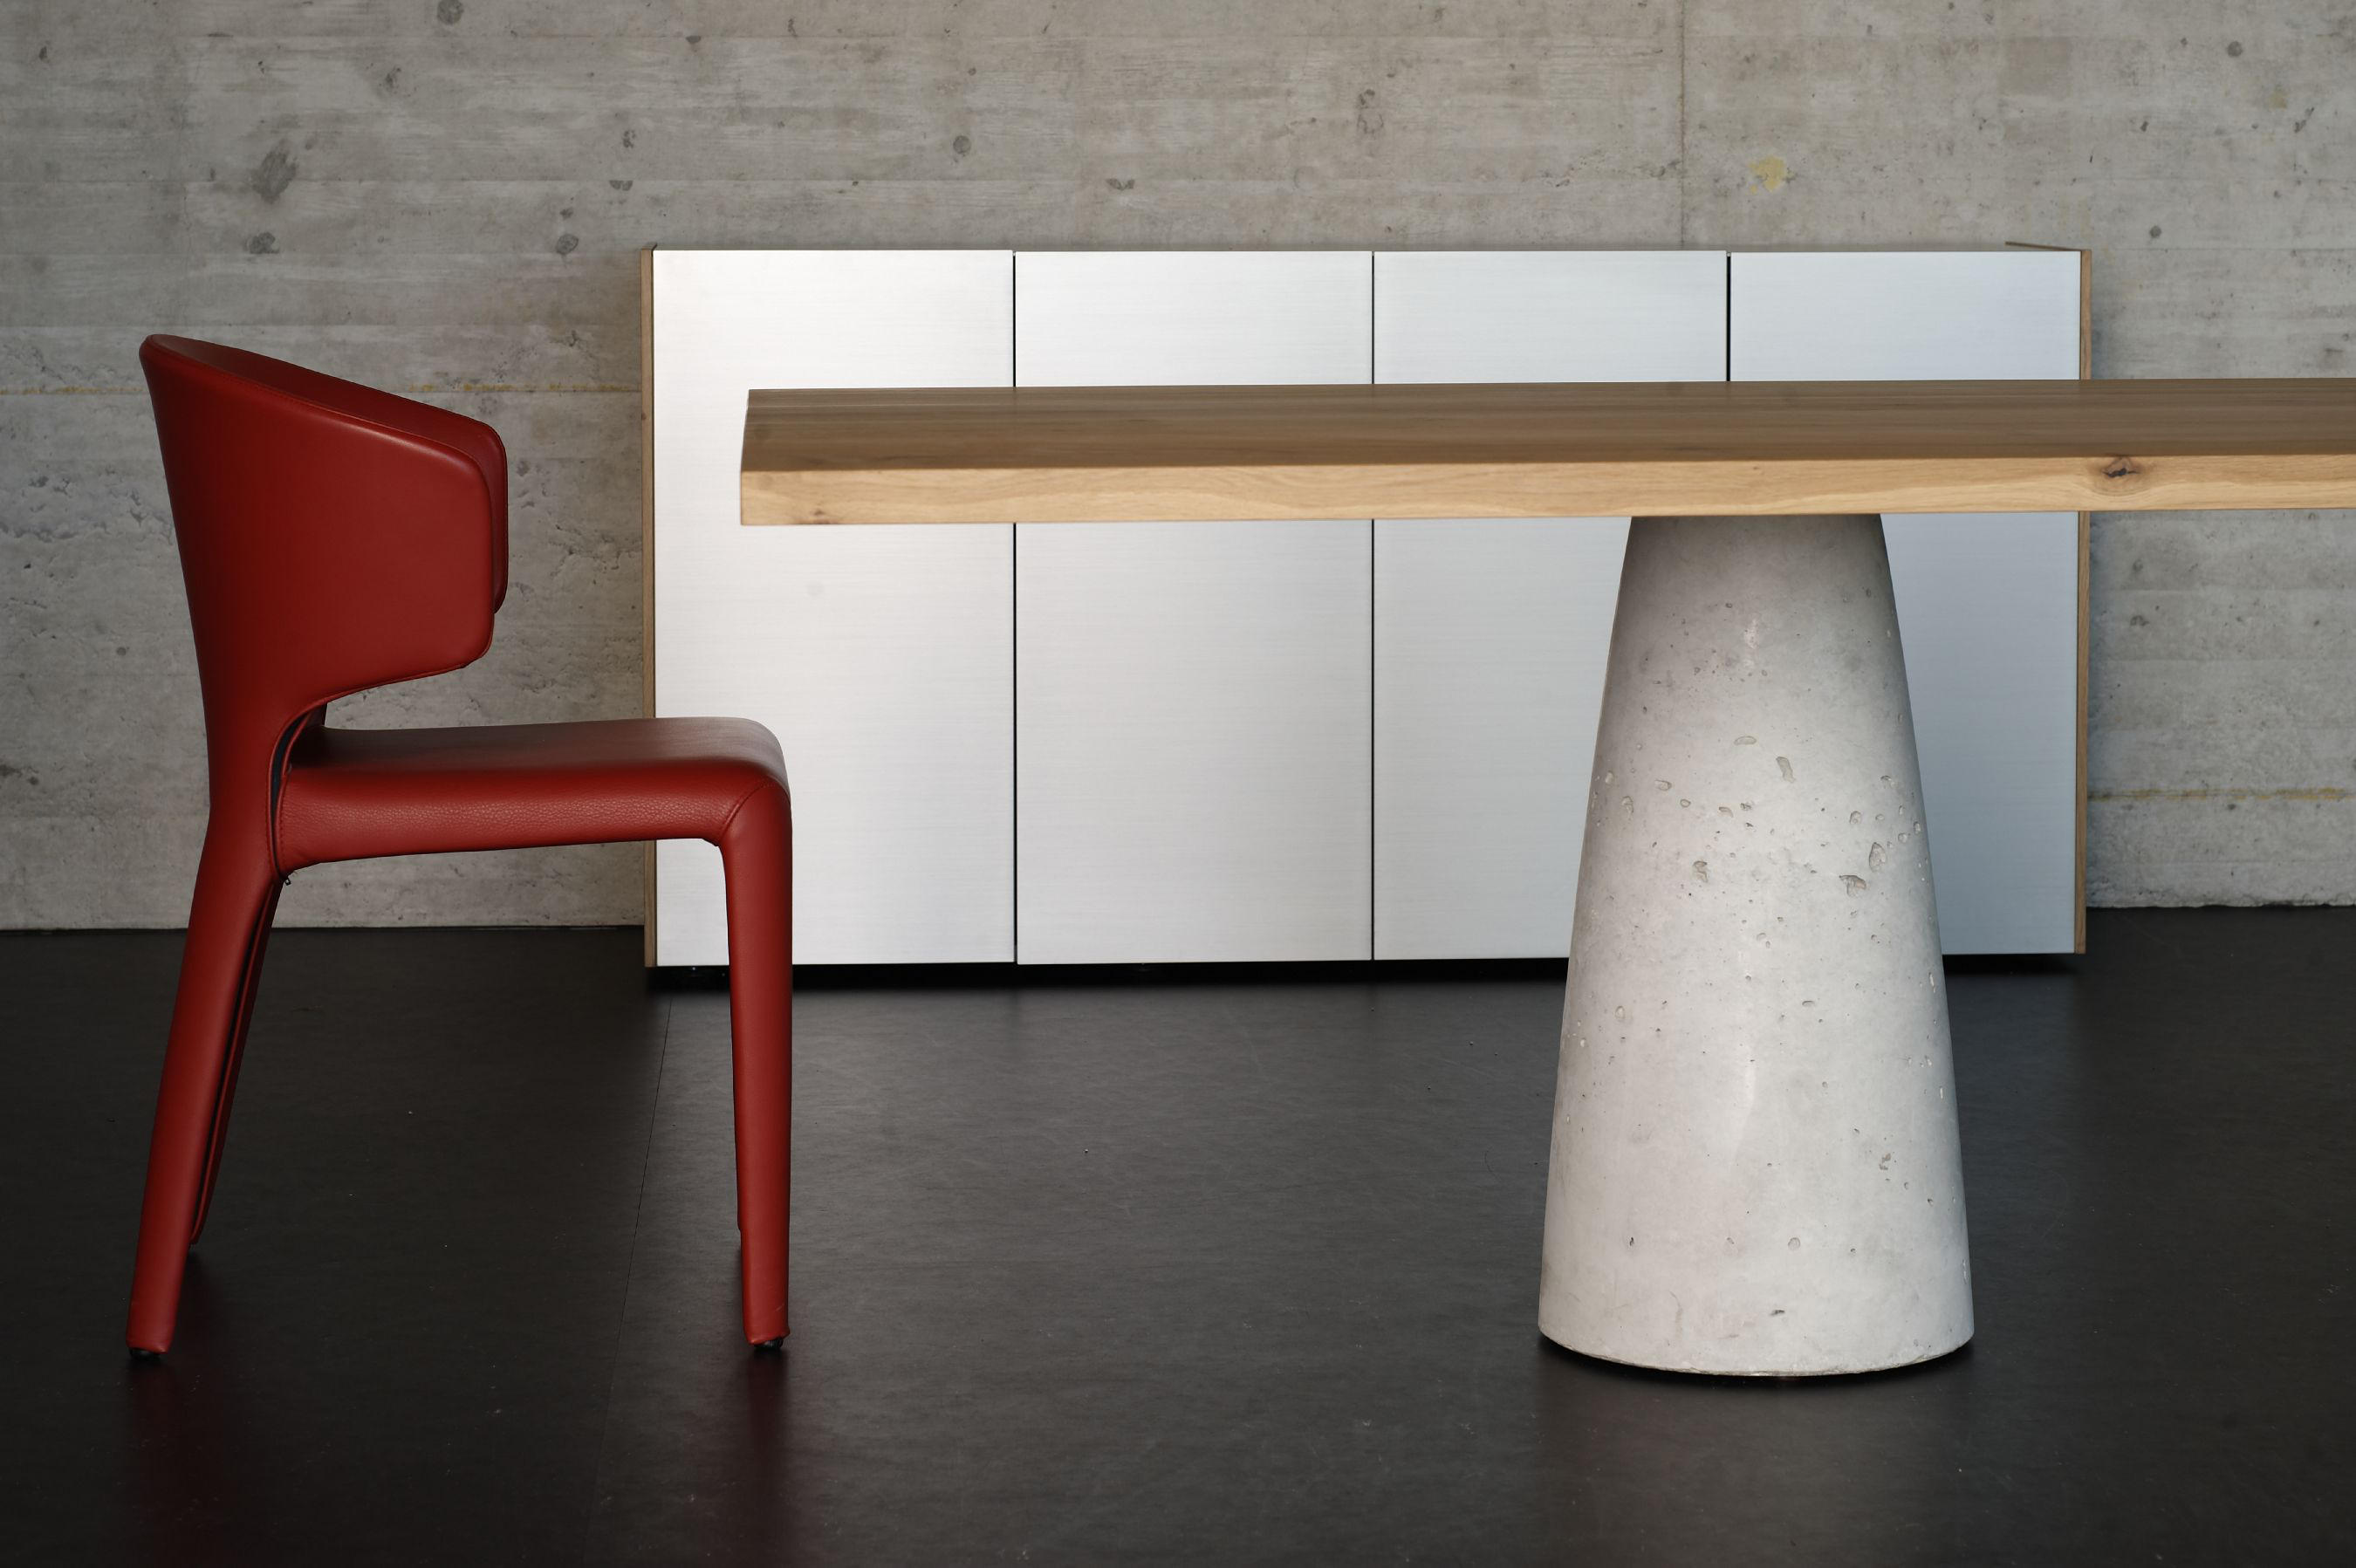 IGN. B. SIDEBOARD. - Sideboards from Ign. Design.   Architonic